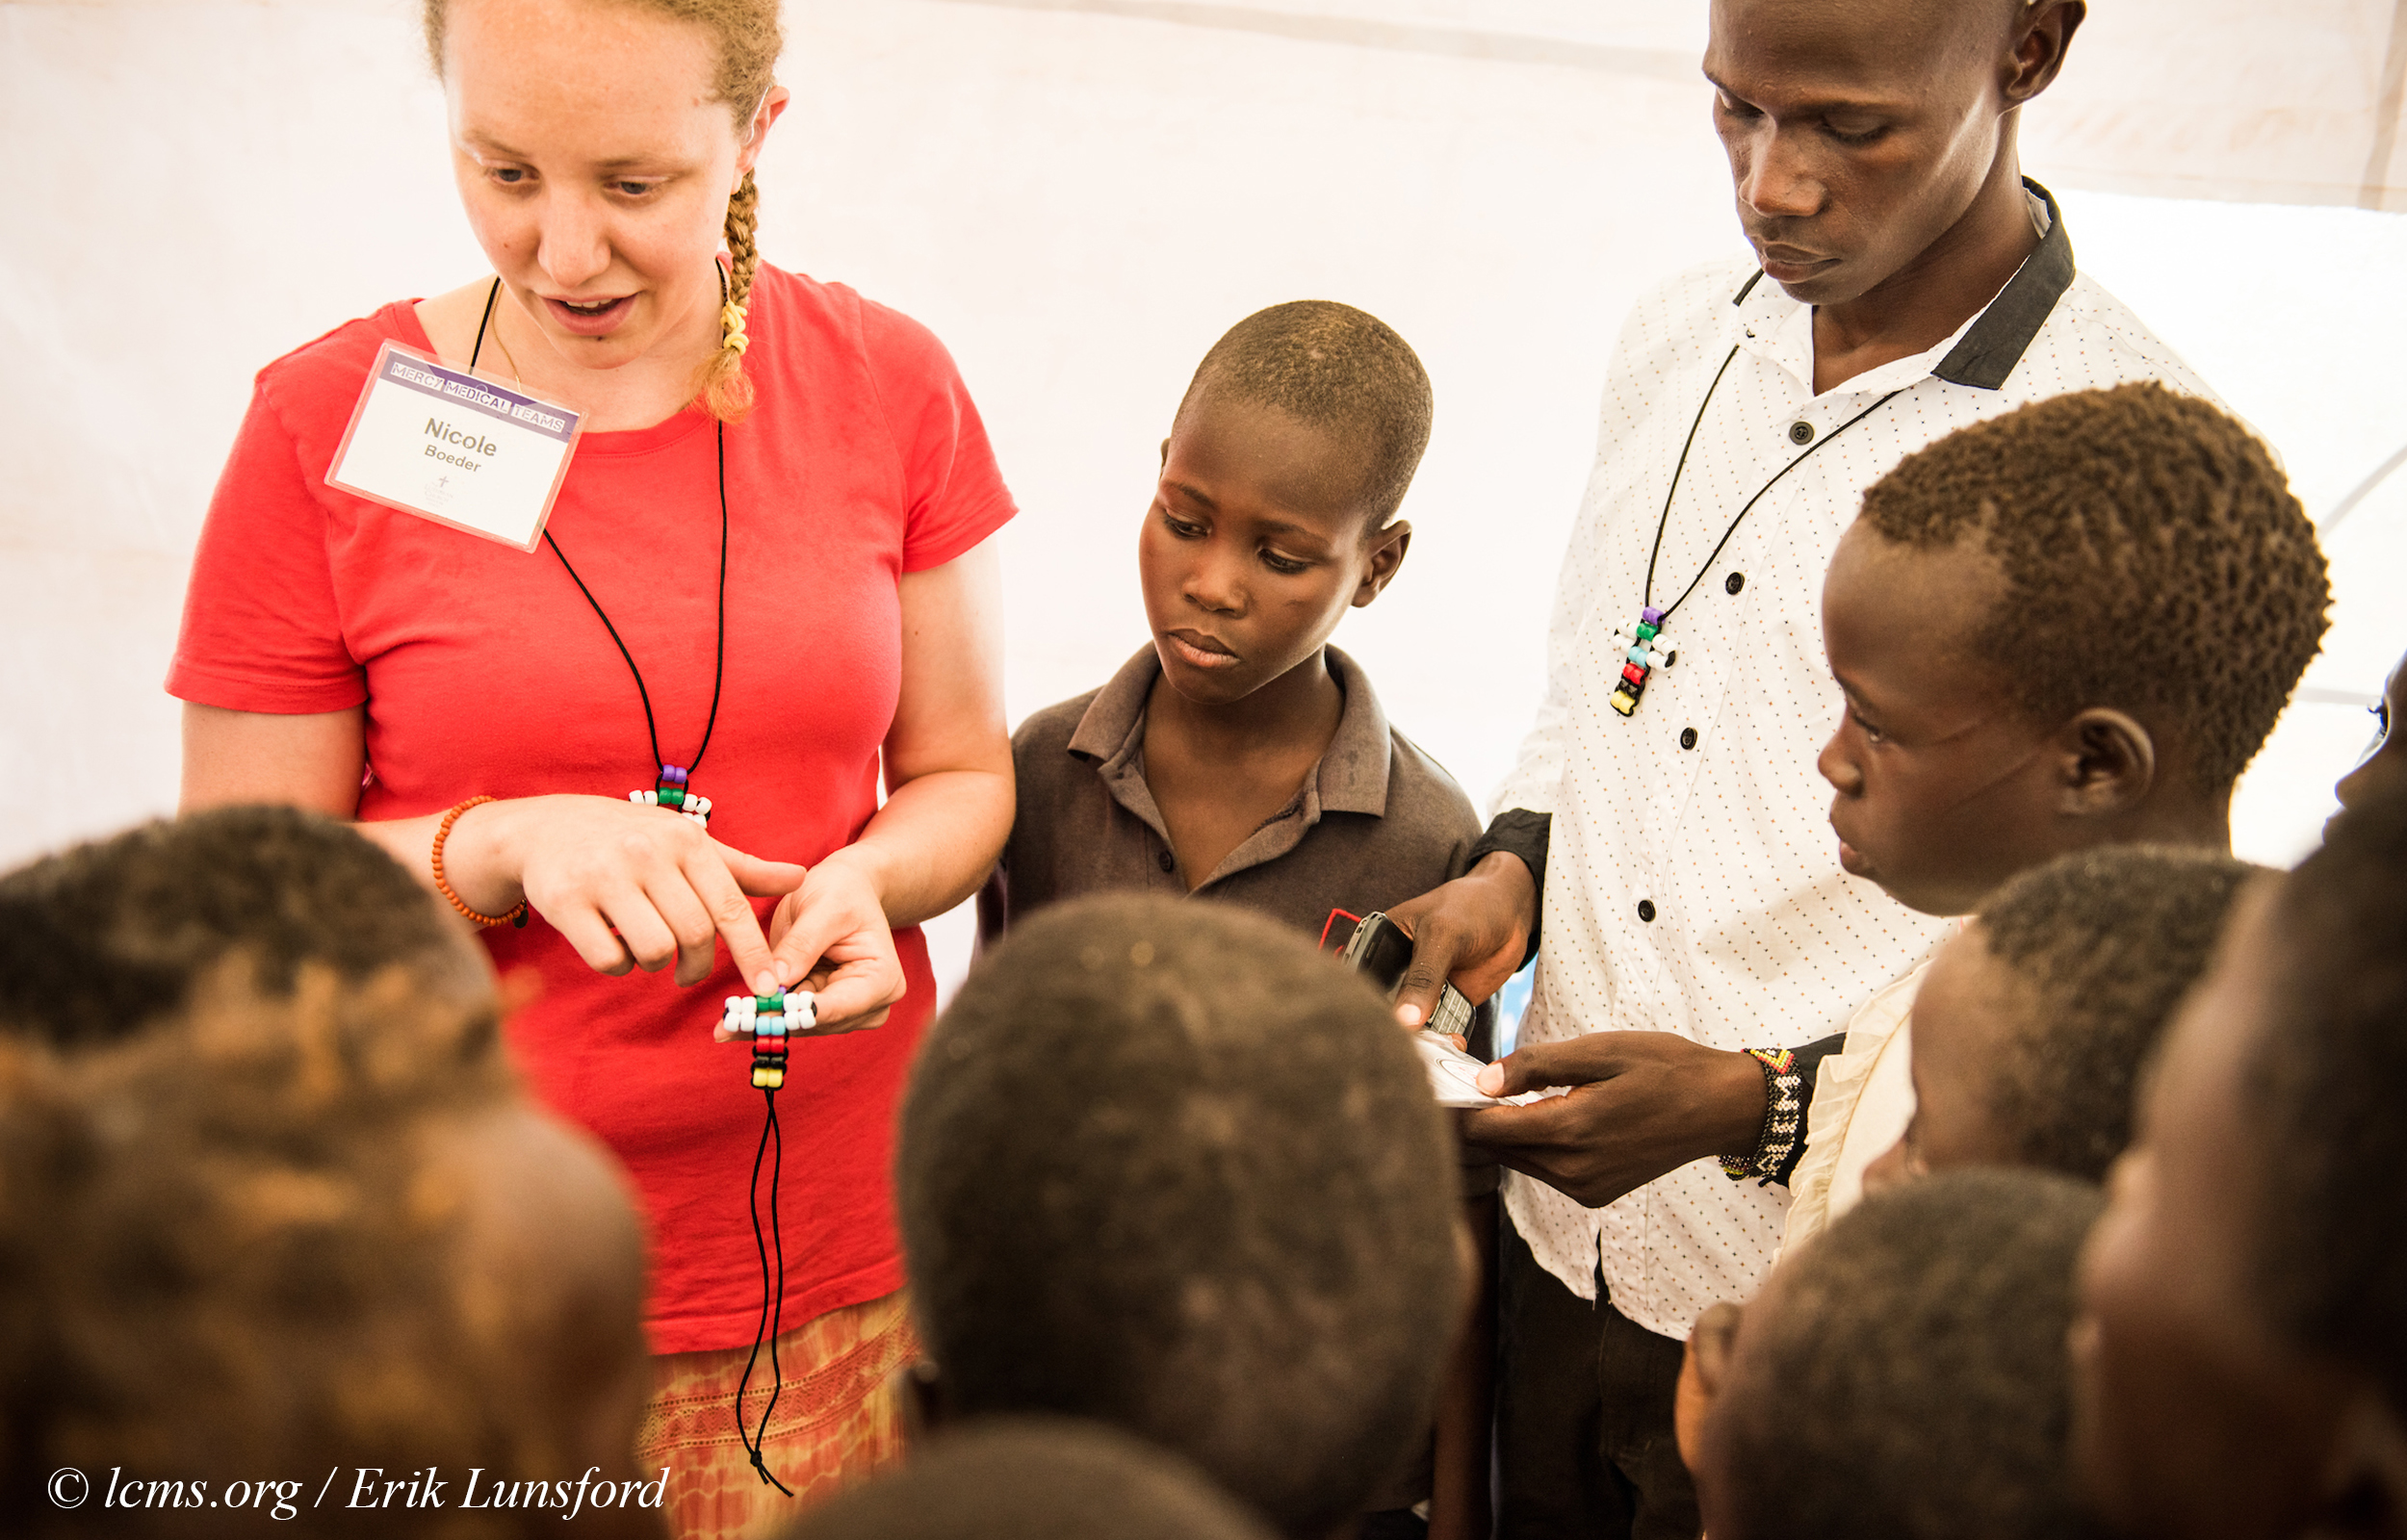 Nicole Boeder, a teacher and a member of Trinity Lutheran Church, Springfield, Ill., witnesses to children about Jesus during the LCMS Mercy Medical Team on Tuesday, June 21, 2016, in Nataparkakono, a village in Turkana, Kenya. LCMS Communications/Erik M. Lunsford